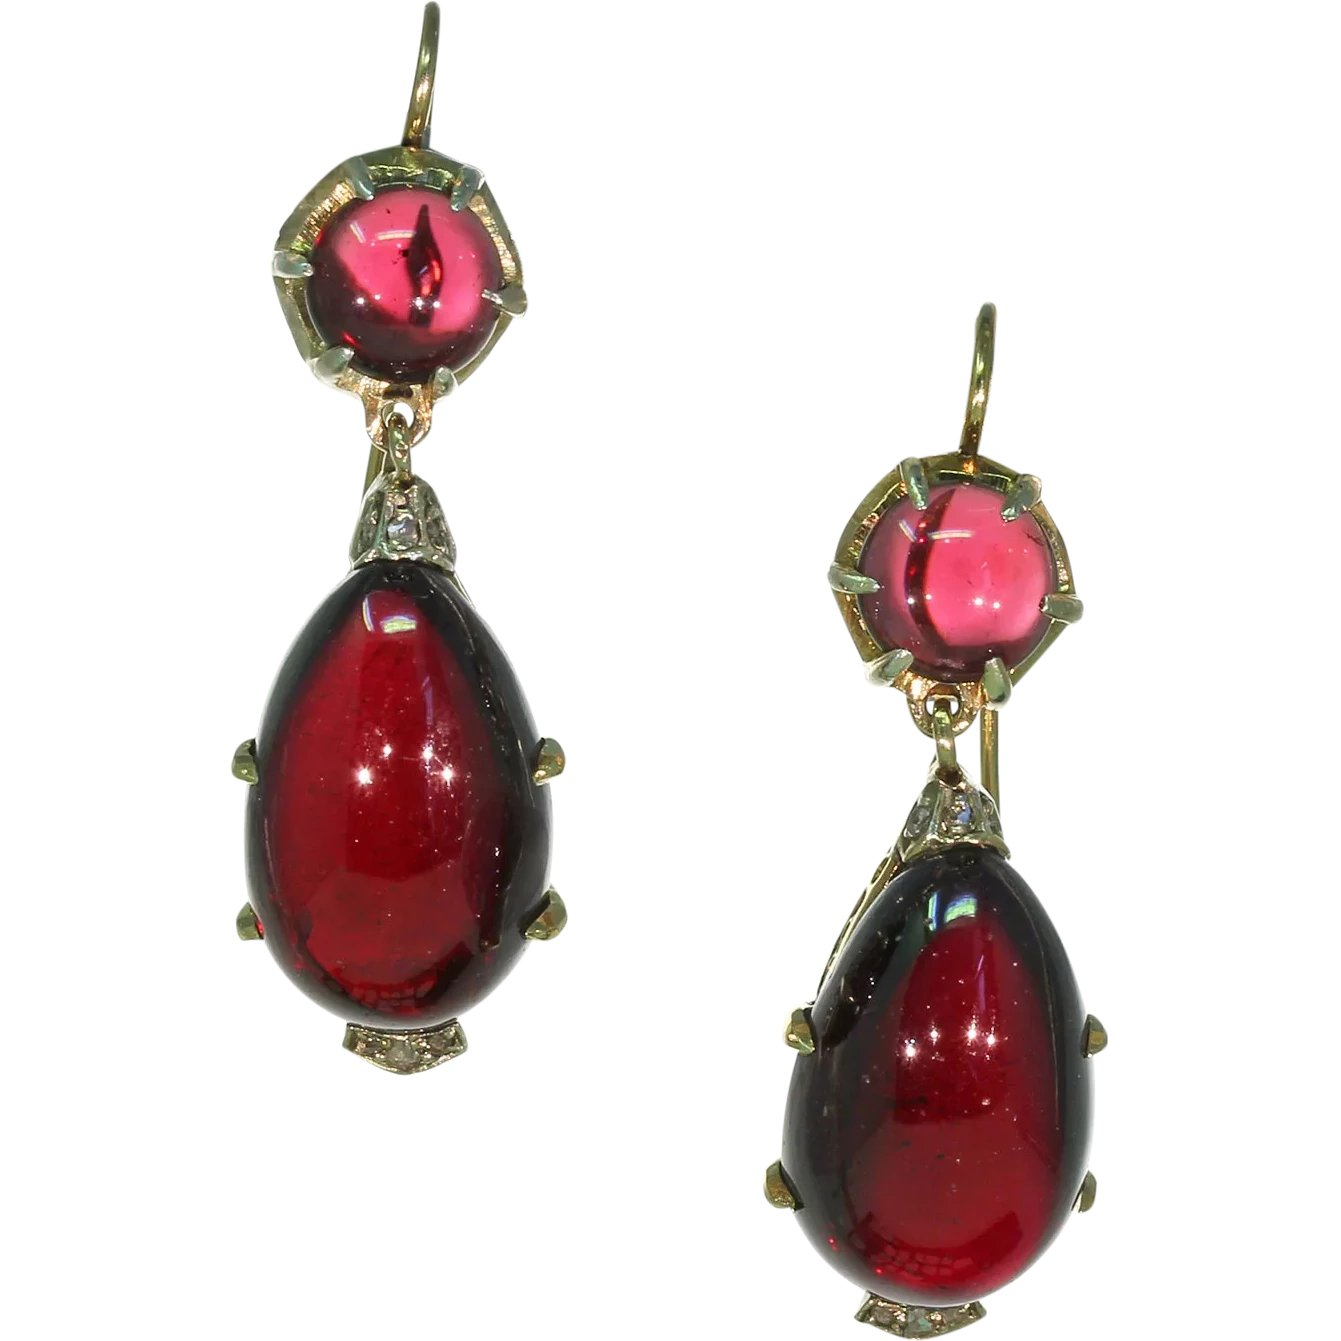 Pave Jewelry,14k Gold Plated 925 Solid Sterling Silver Stud Earrings 0.6 Weight-2.24 Gm PJ-335 Mozambique Garnet Gemstone Victorian Style